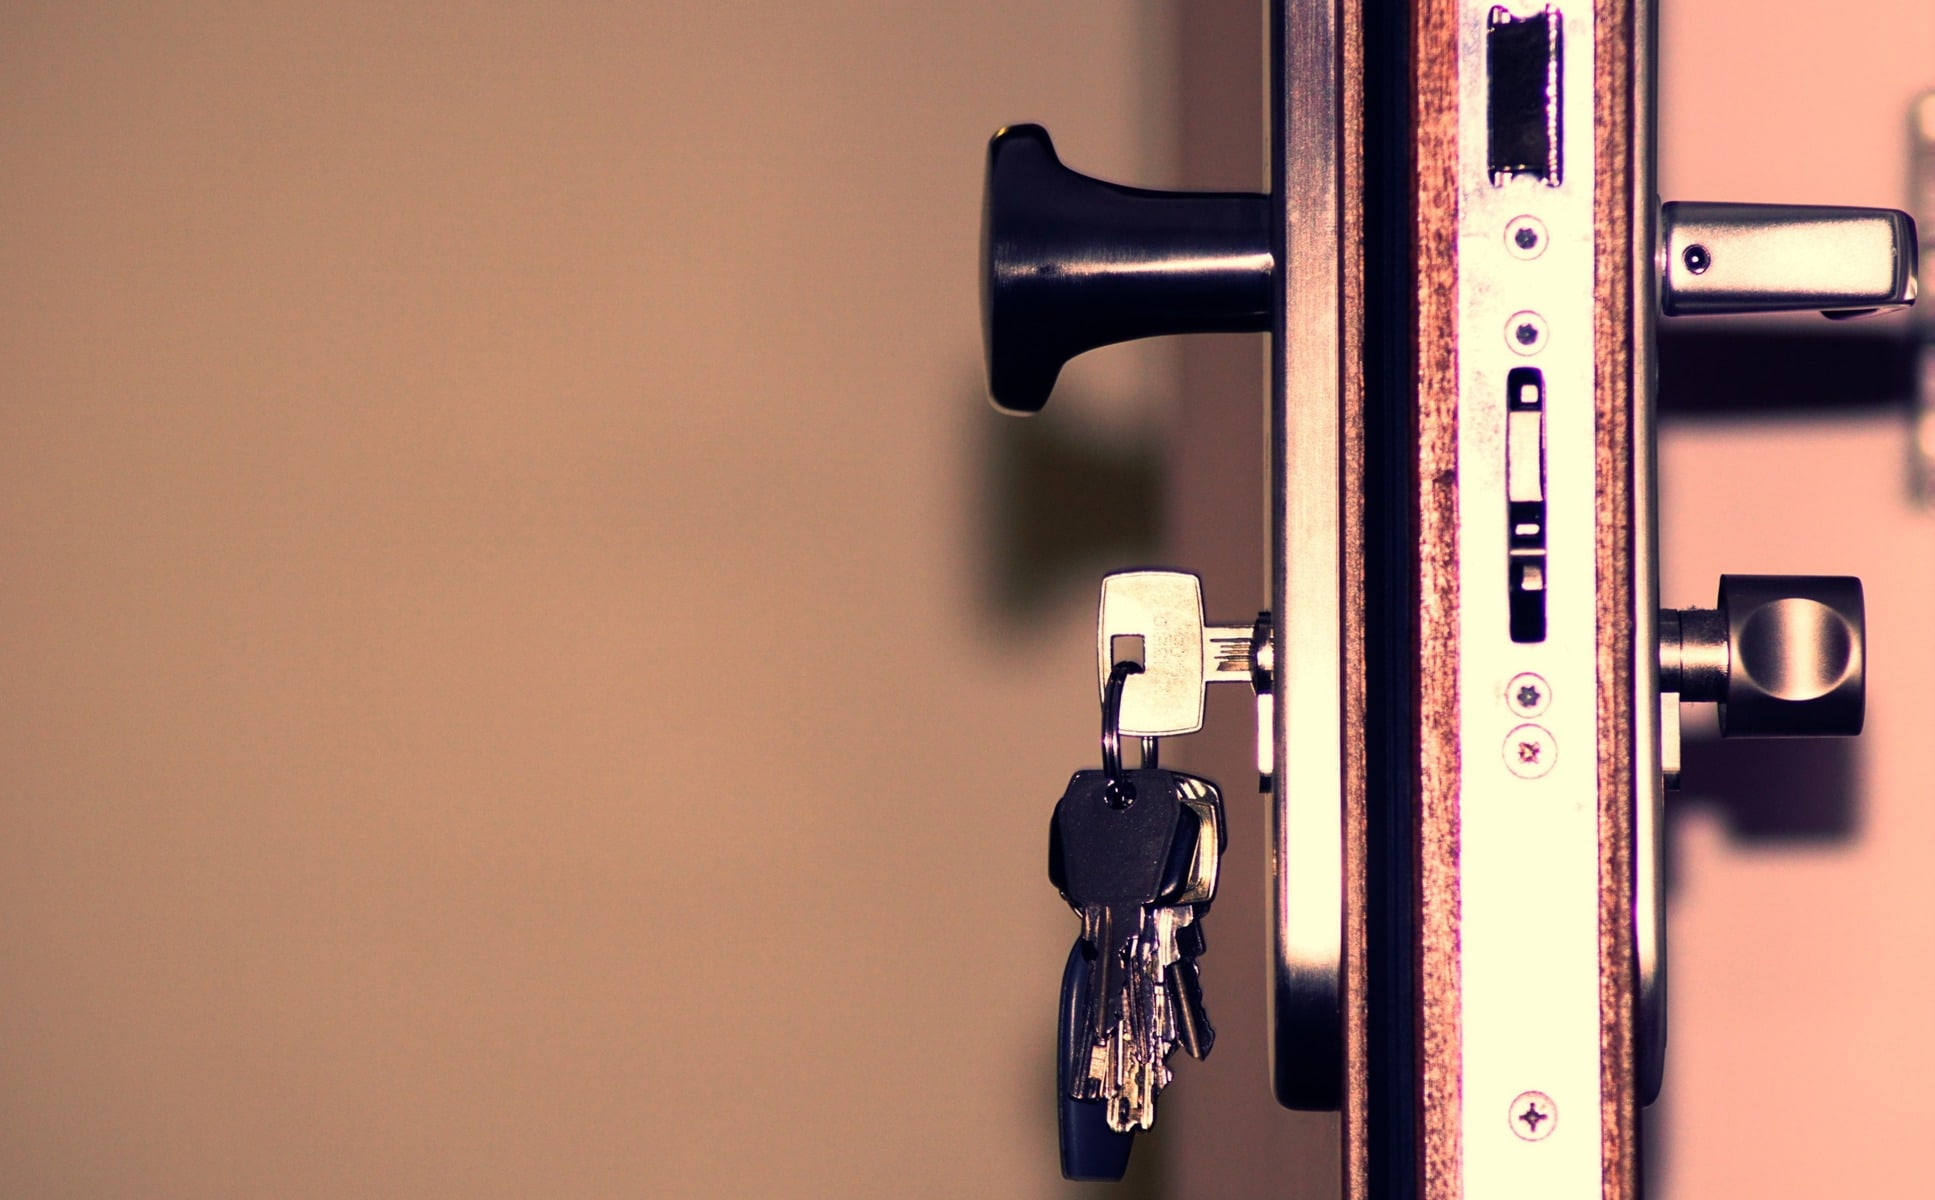 Improve Response Times with Automated Security Processes